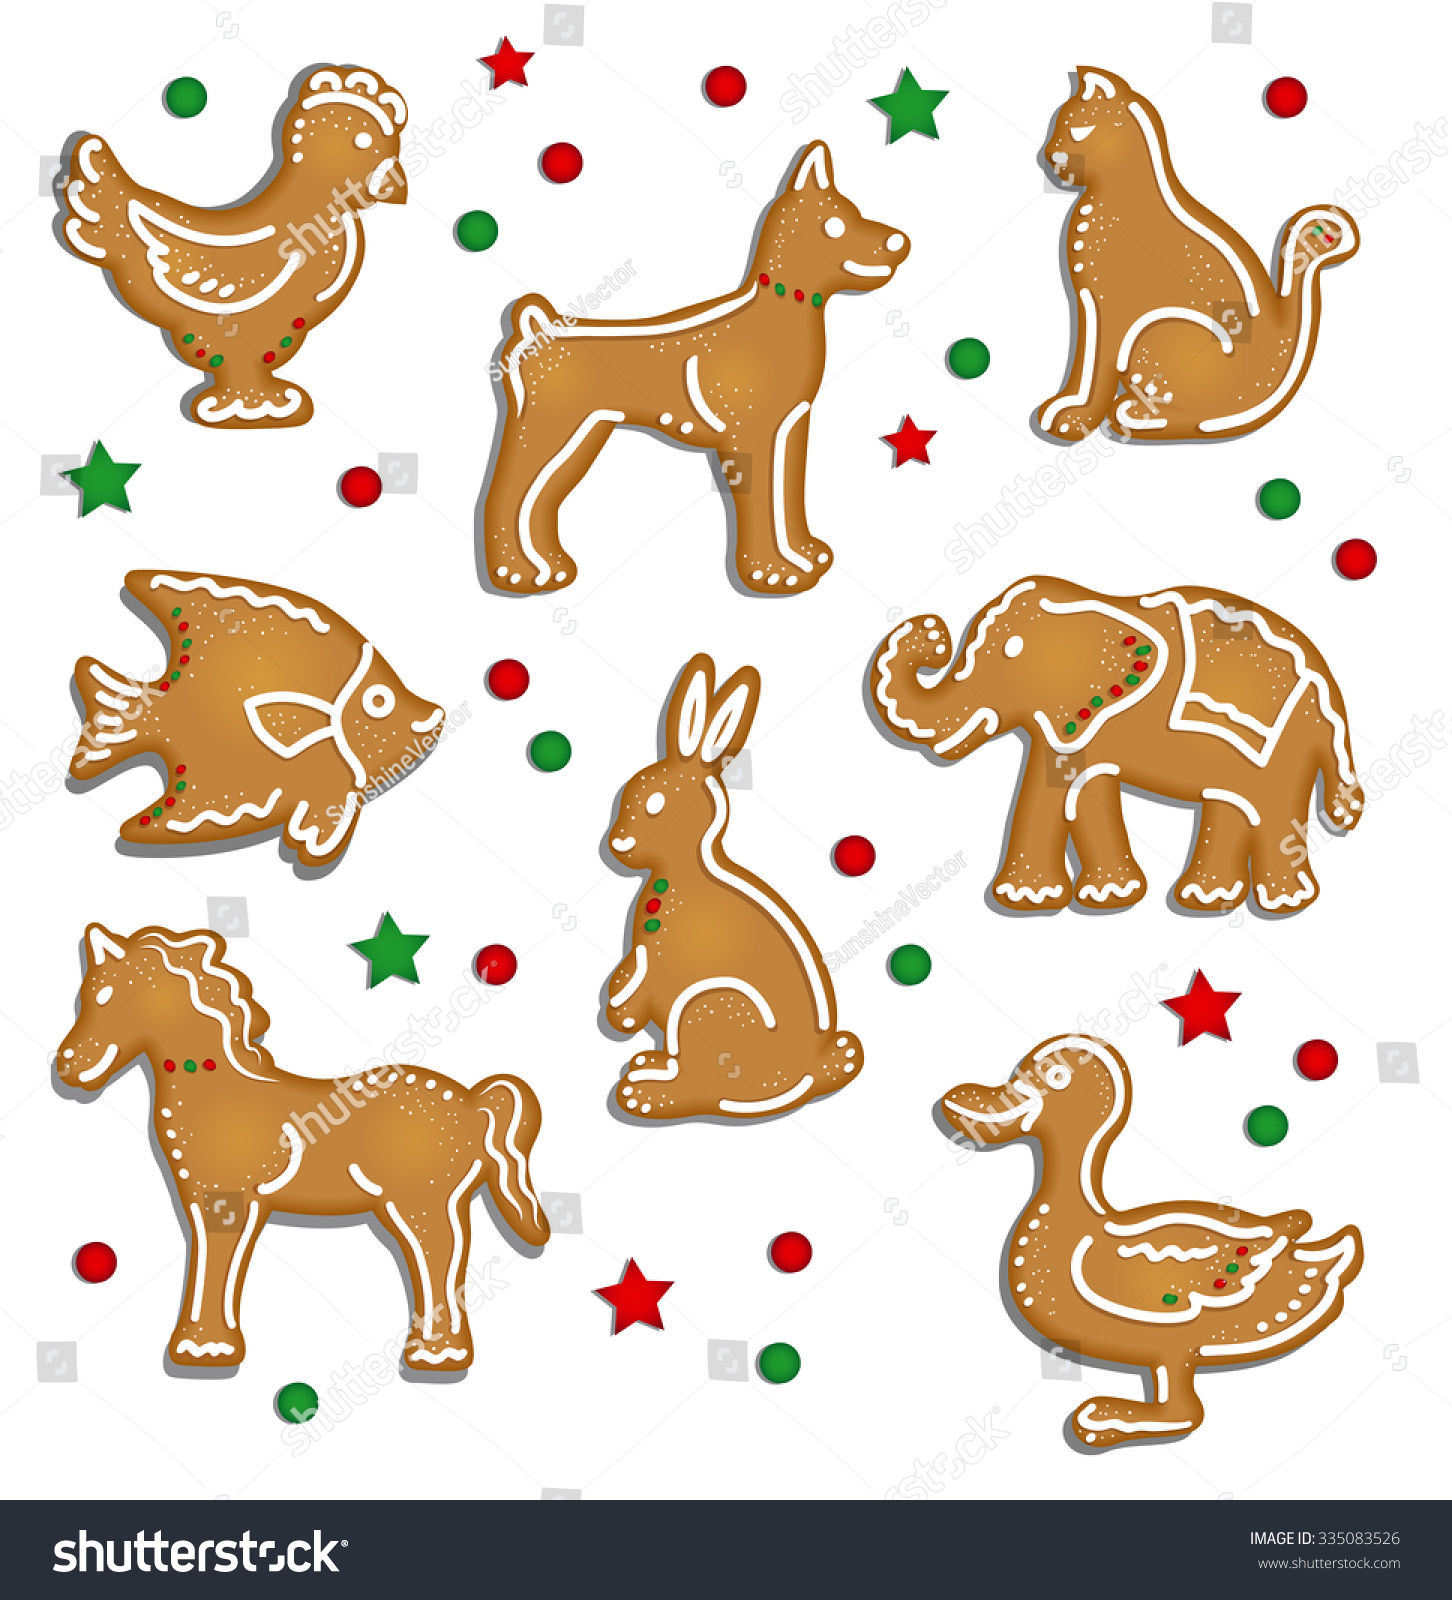 Christmas Gingerbread Cookies Animals Stock Vector